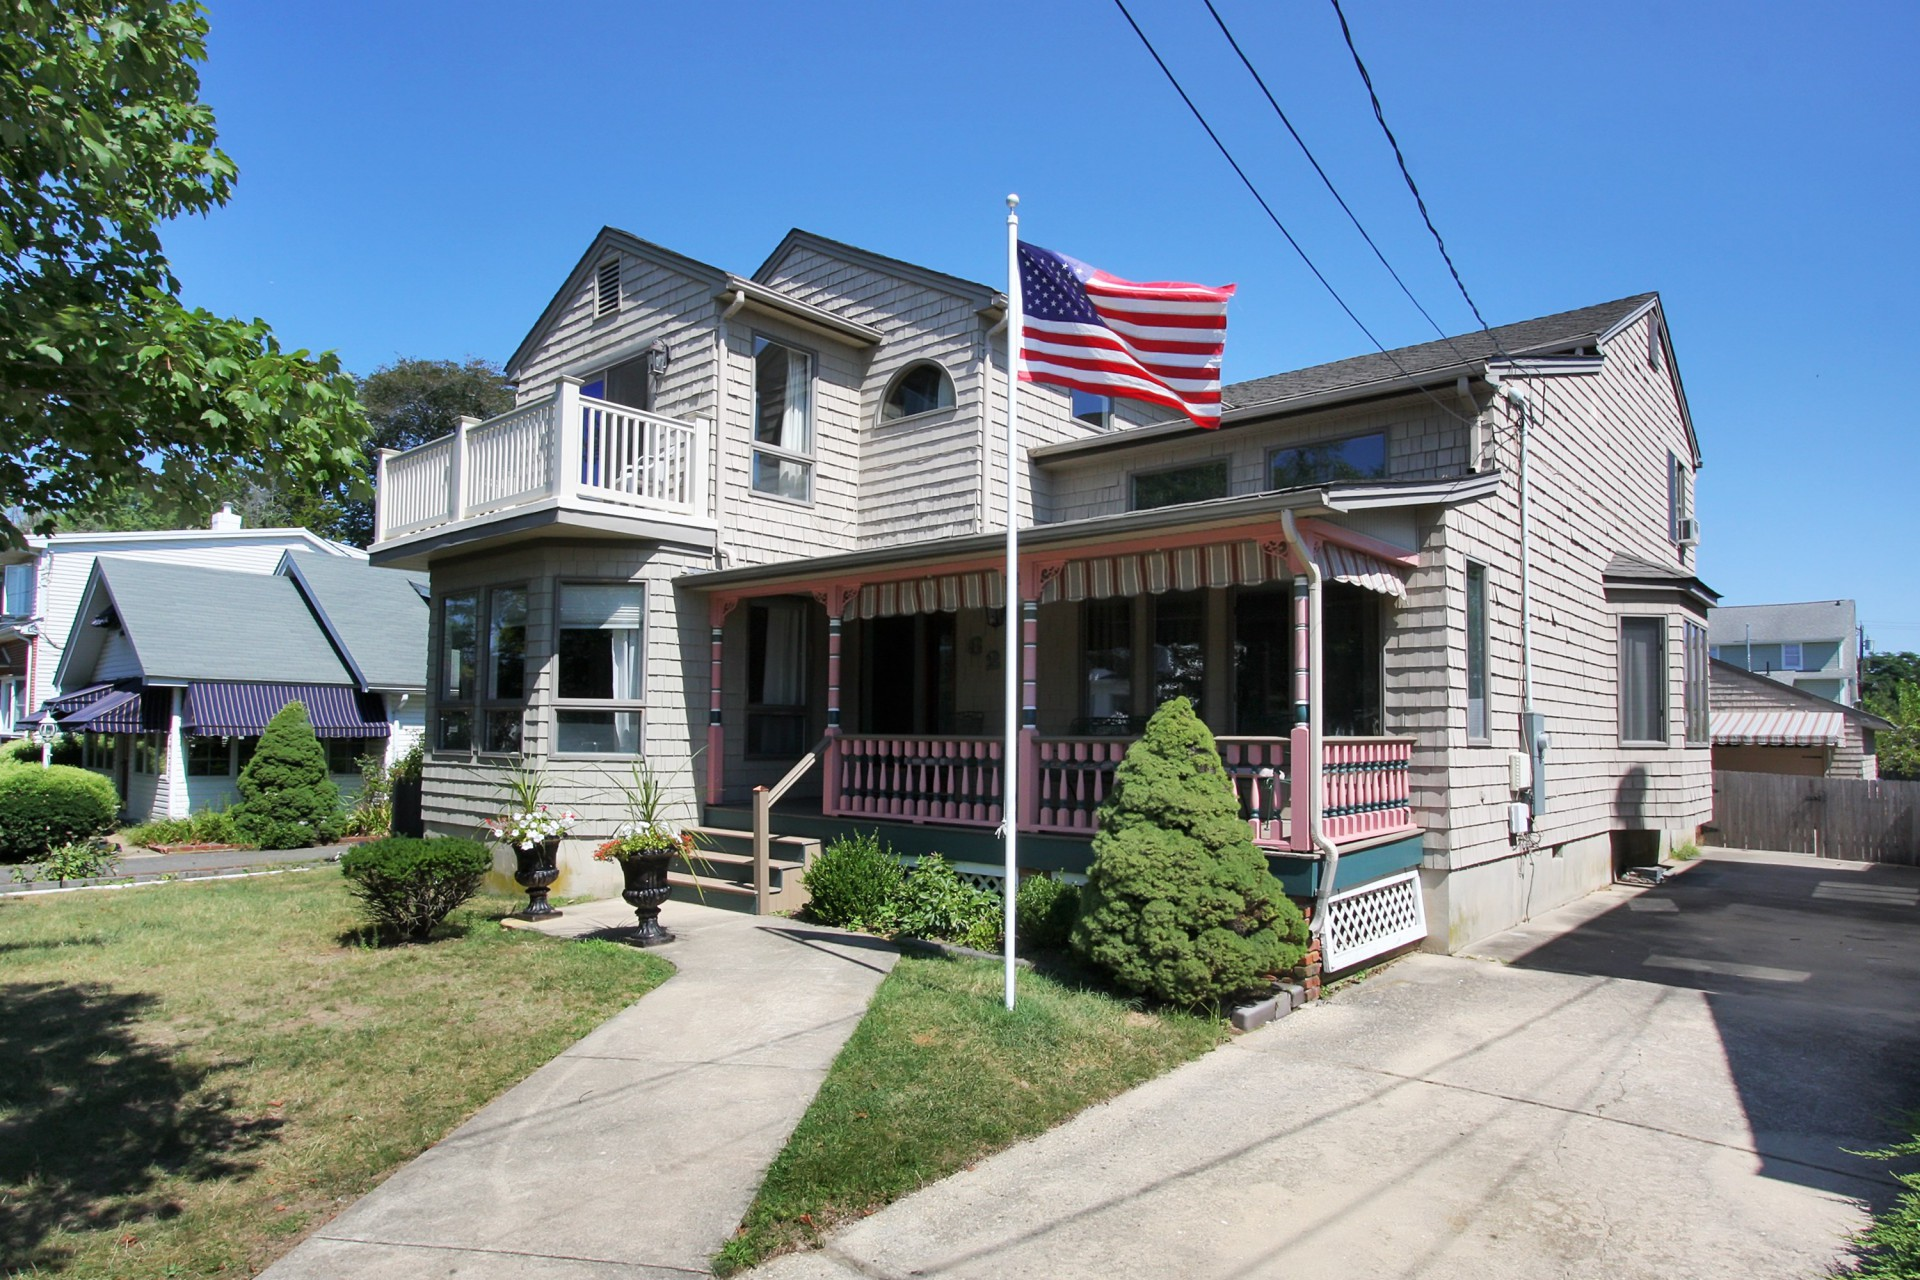 Single Family Home for Sale at Spacious and Graceful Home 62 Rogers Avenue Manasquan, New Jersey 08736 United States